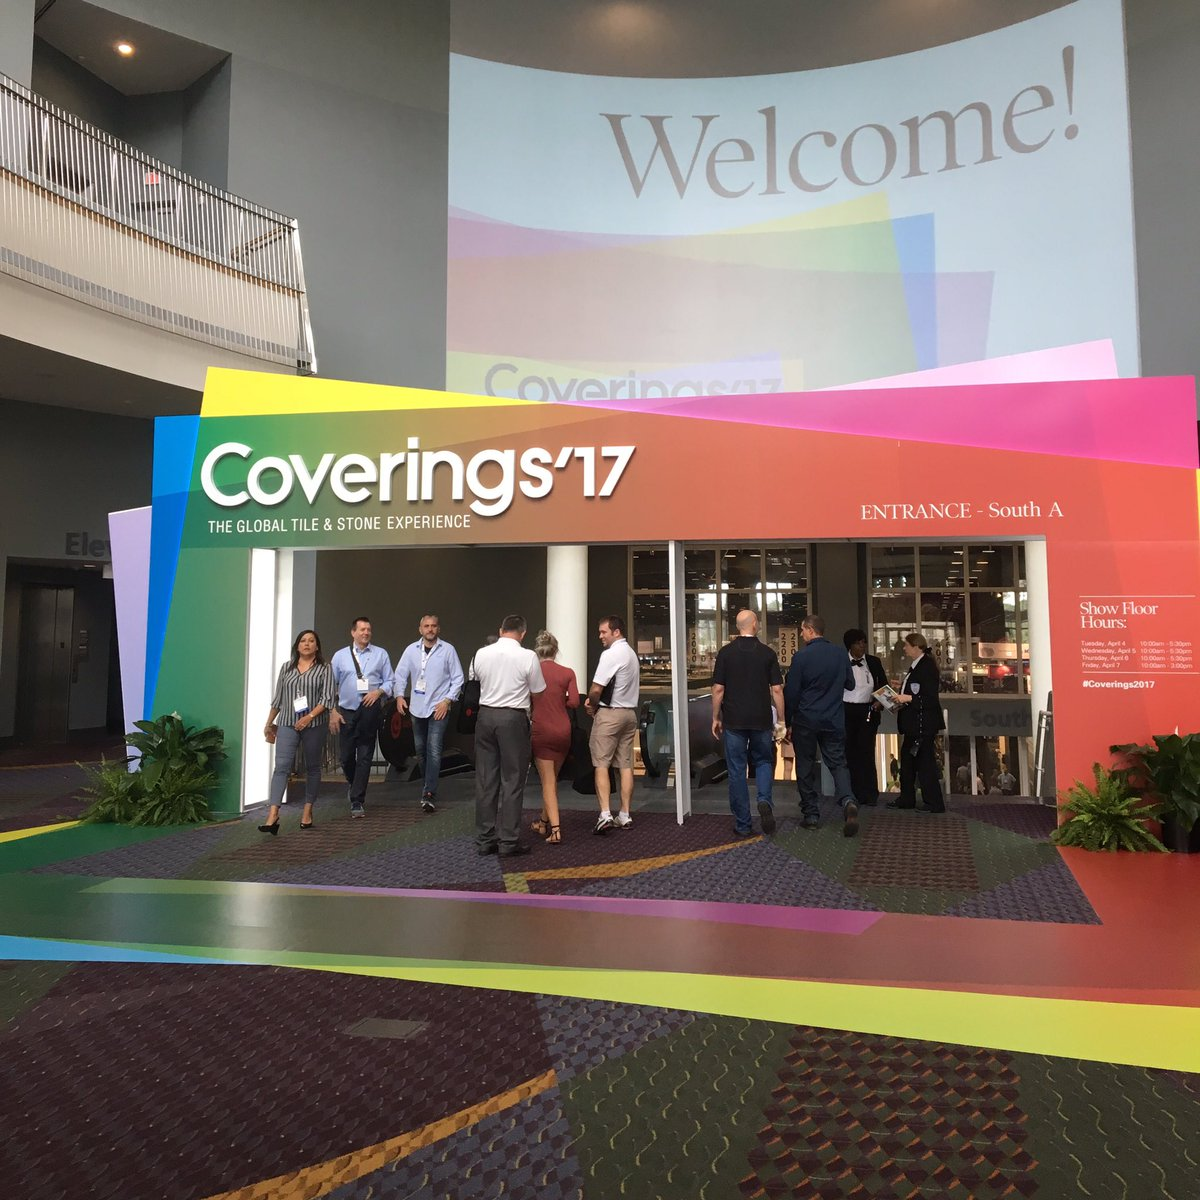 Coverings 17